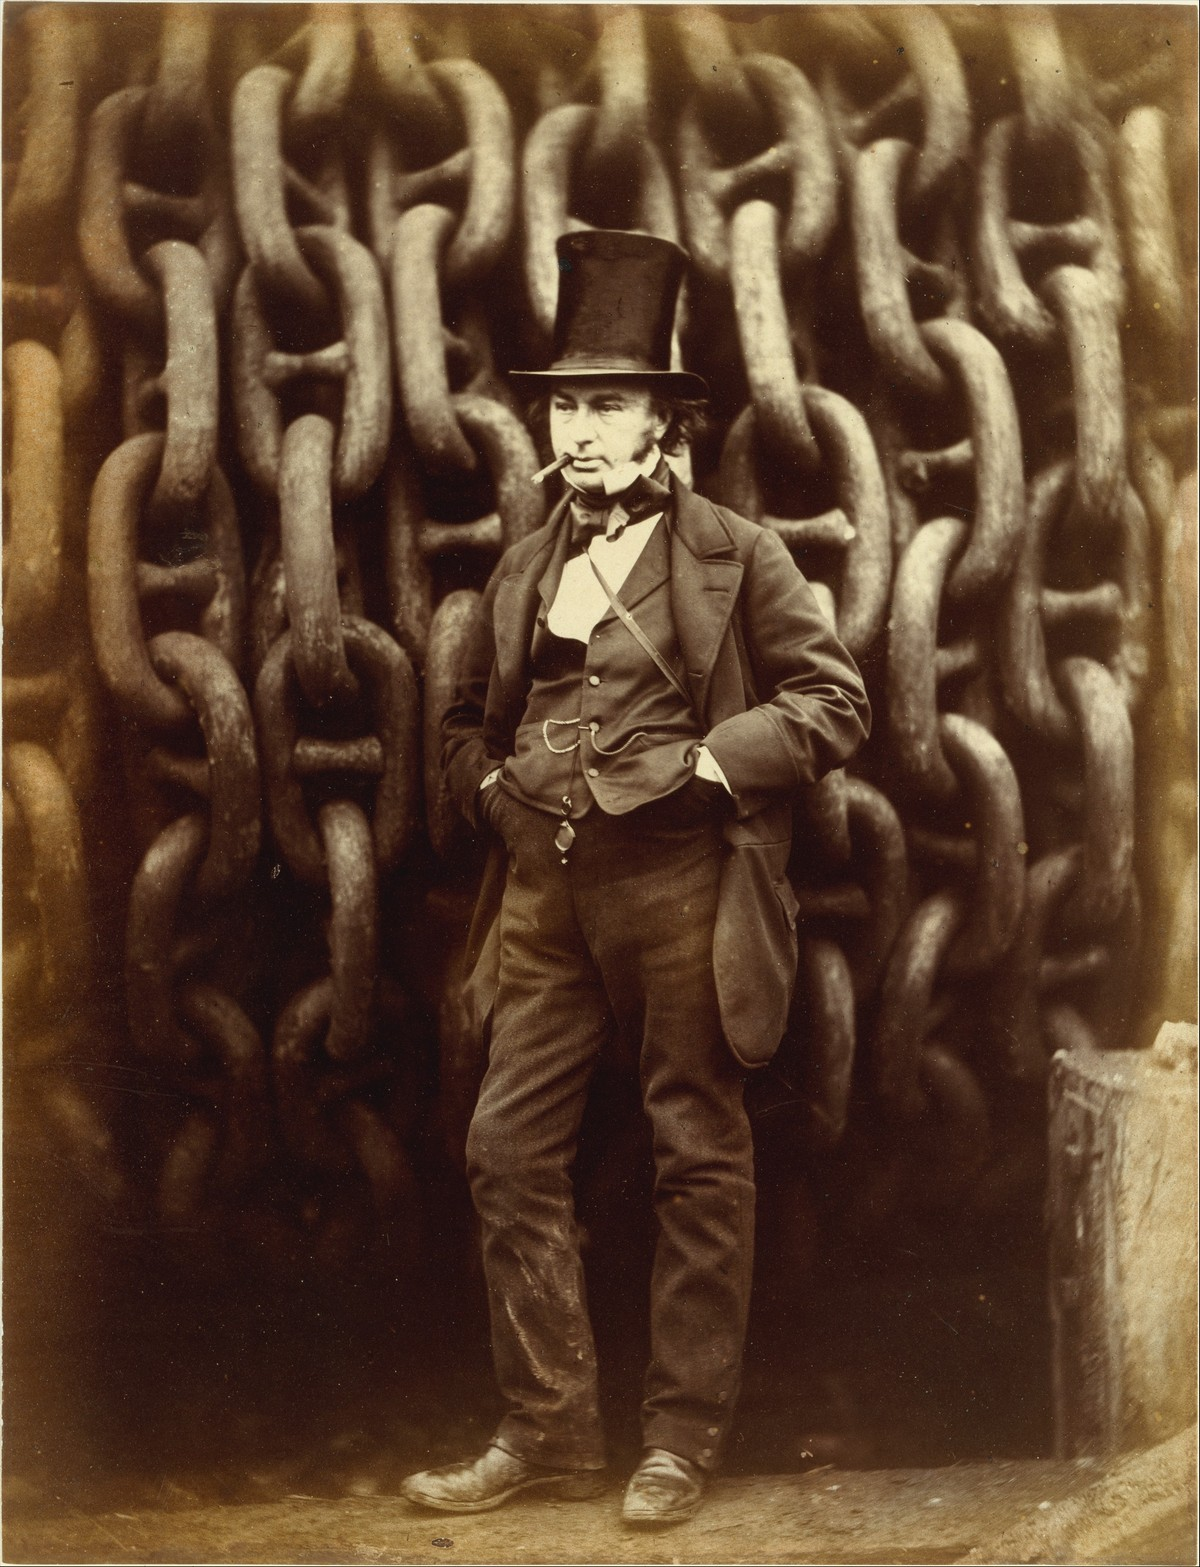 Isambard Kingdom Brunel Standing Before the Launching Chains of the Great Eastern / Robert Howlett / 1857